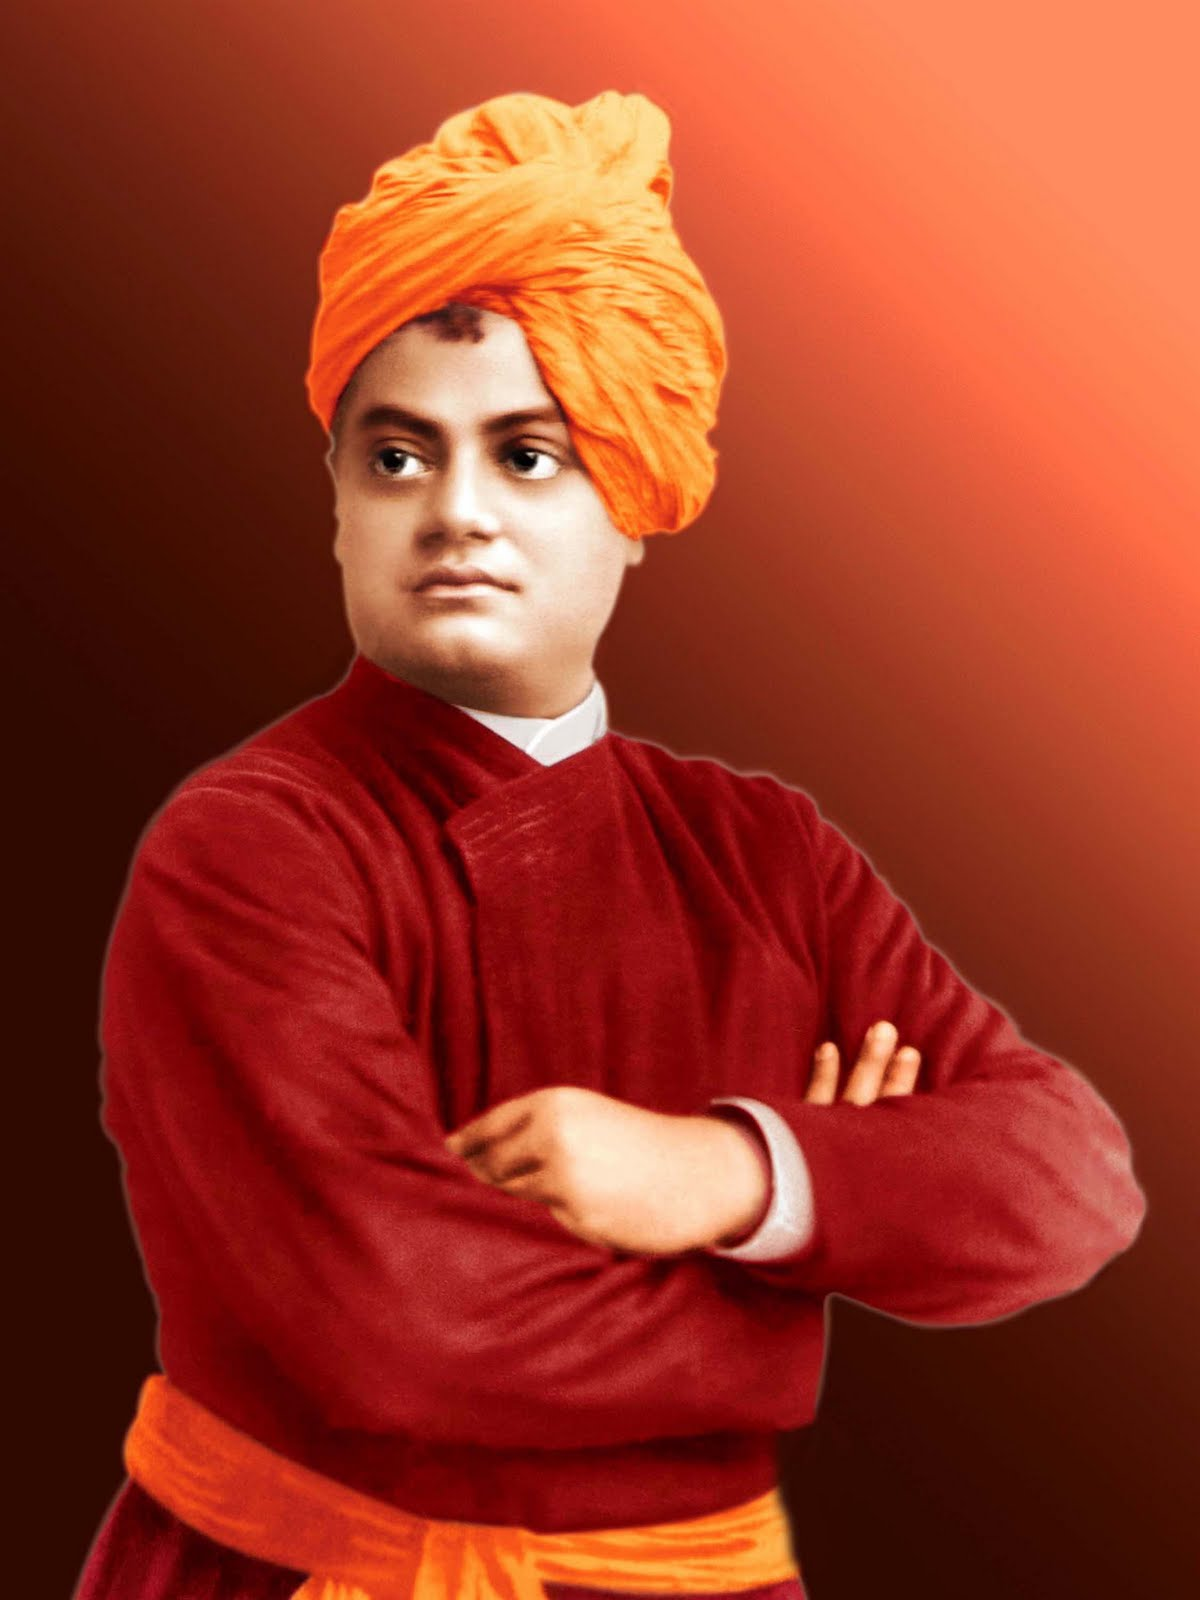 Swami Vivekanand Hd Images For Desktop Pc Background   Swami 1200x1600